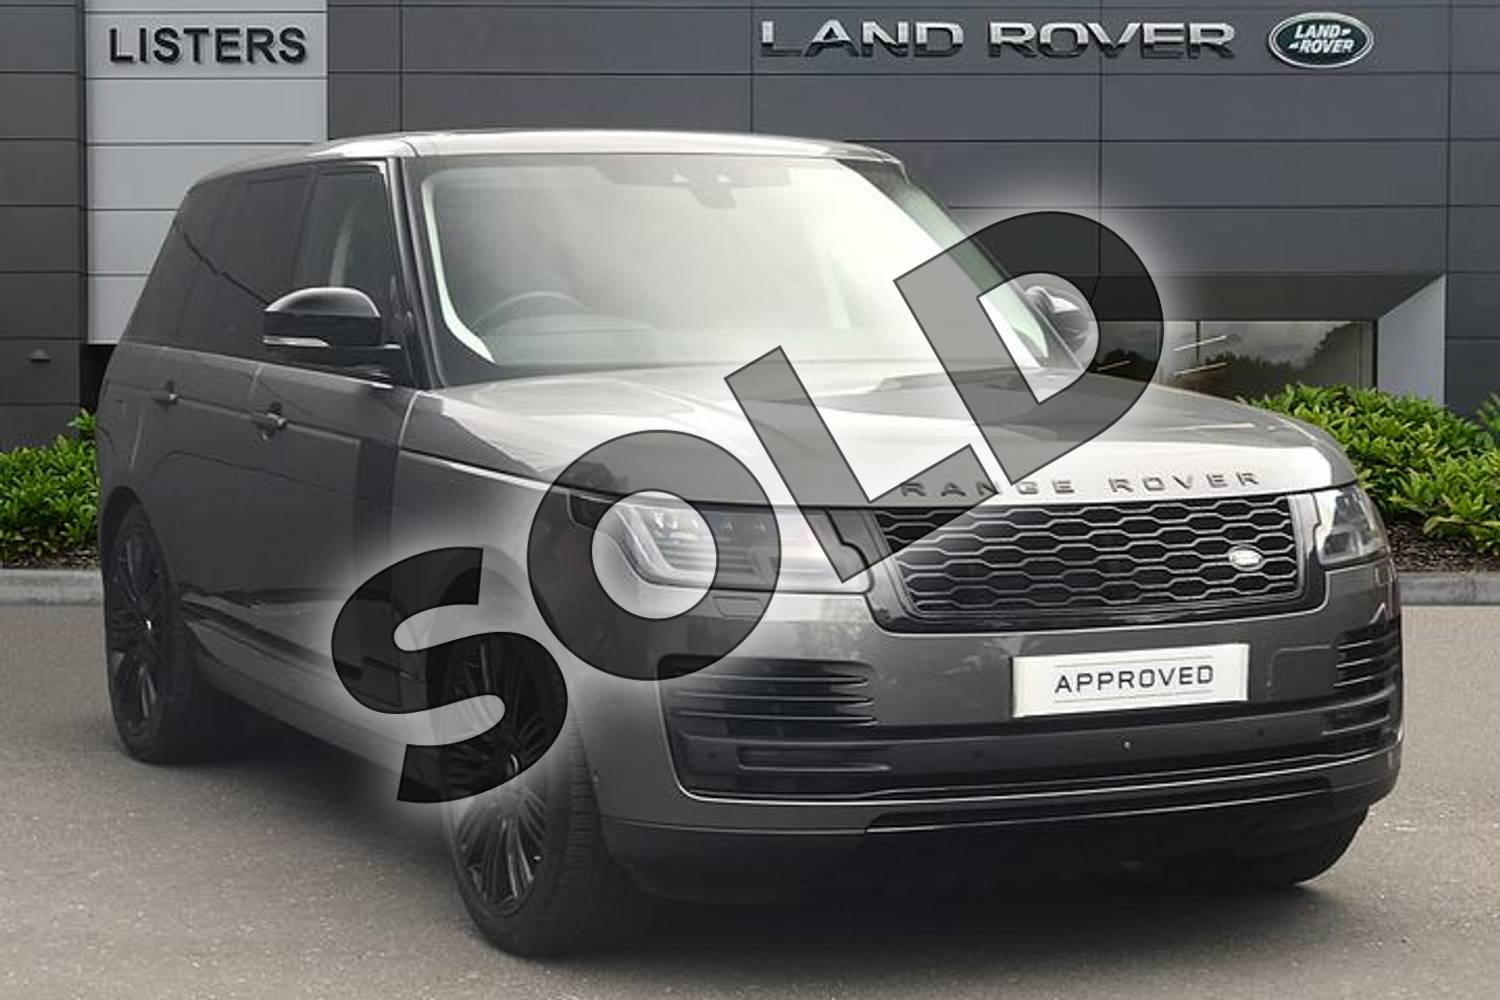 2018 Range Rover Diesel Estate Diesel 4.4 SDV8 Autobiography 4dr Auto in Corris Grey at Listers Land Rover Droitwich